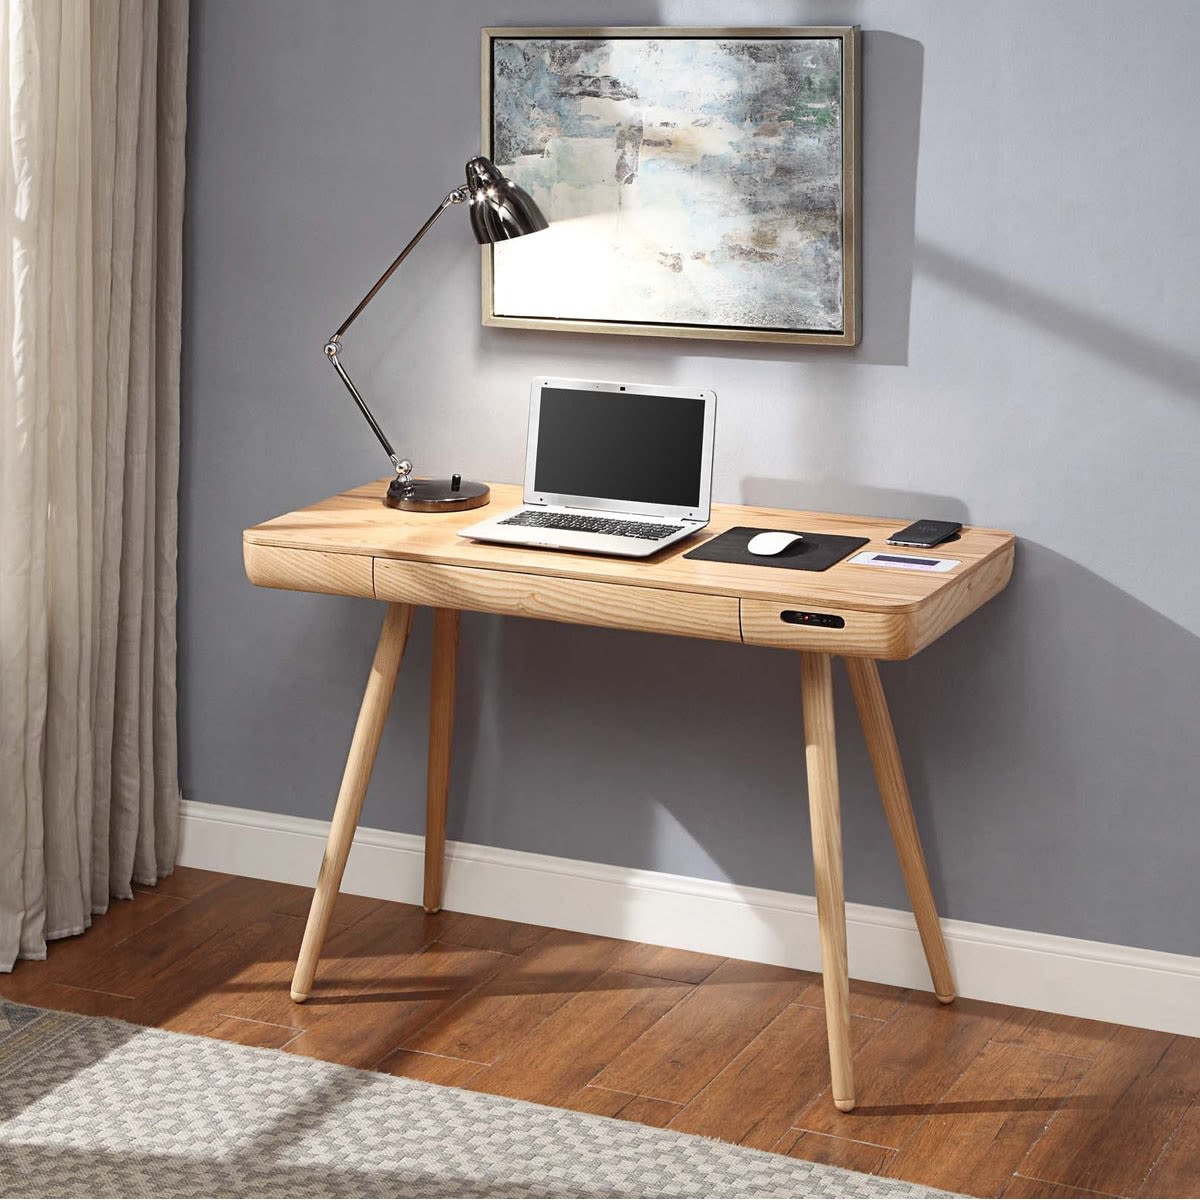 San francisco smart desk with qi wireless charger usb - Creating a small home office ...